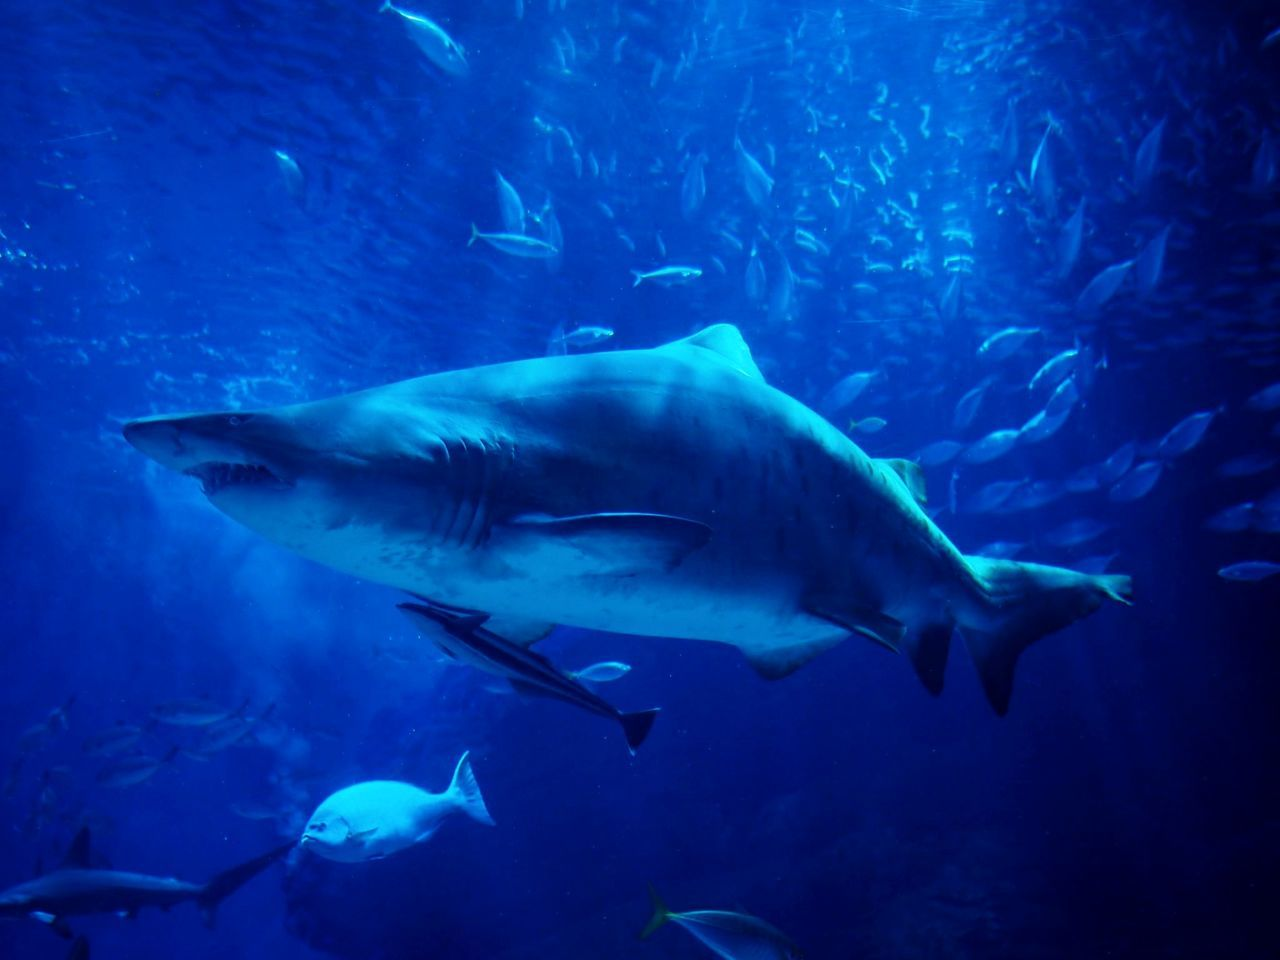 fish, animal themes, underwater, sea life, swimming, animals in the wild, large group of animals, no people, undersea, aquarium, nature, shark, blue, animal wildlife, motion, water, sea, day, indoors